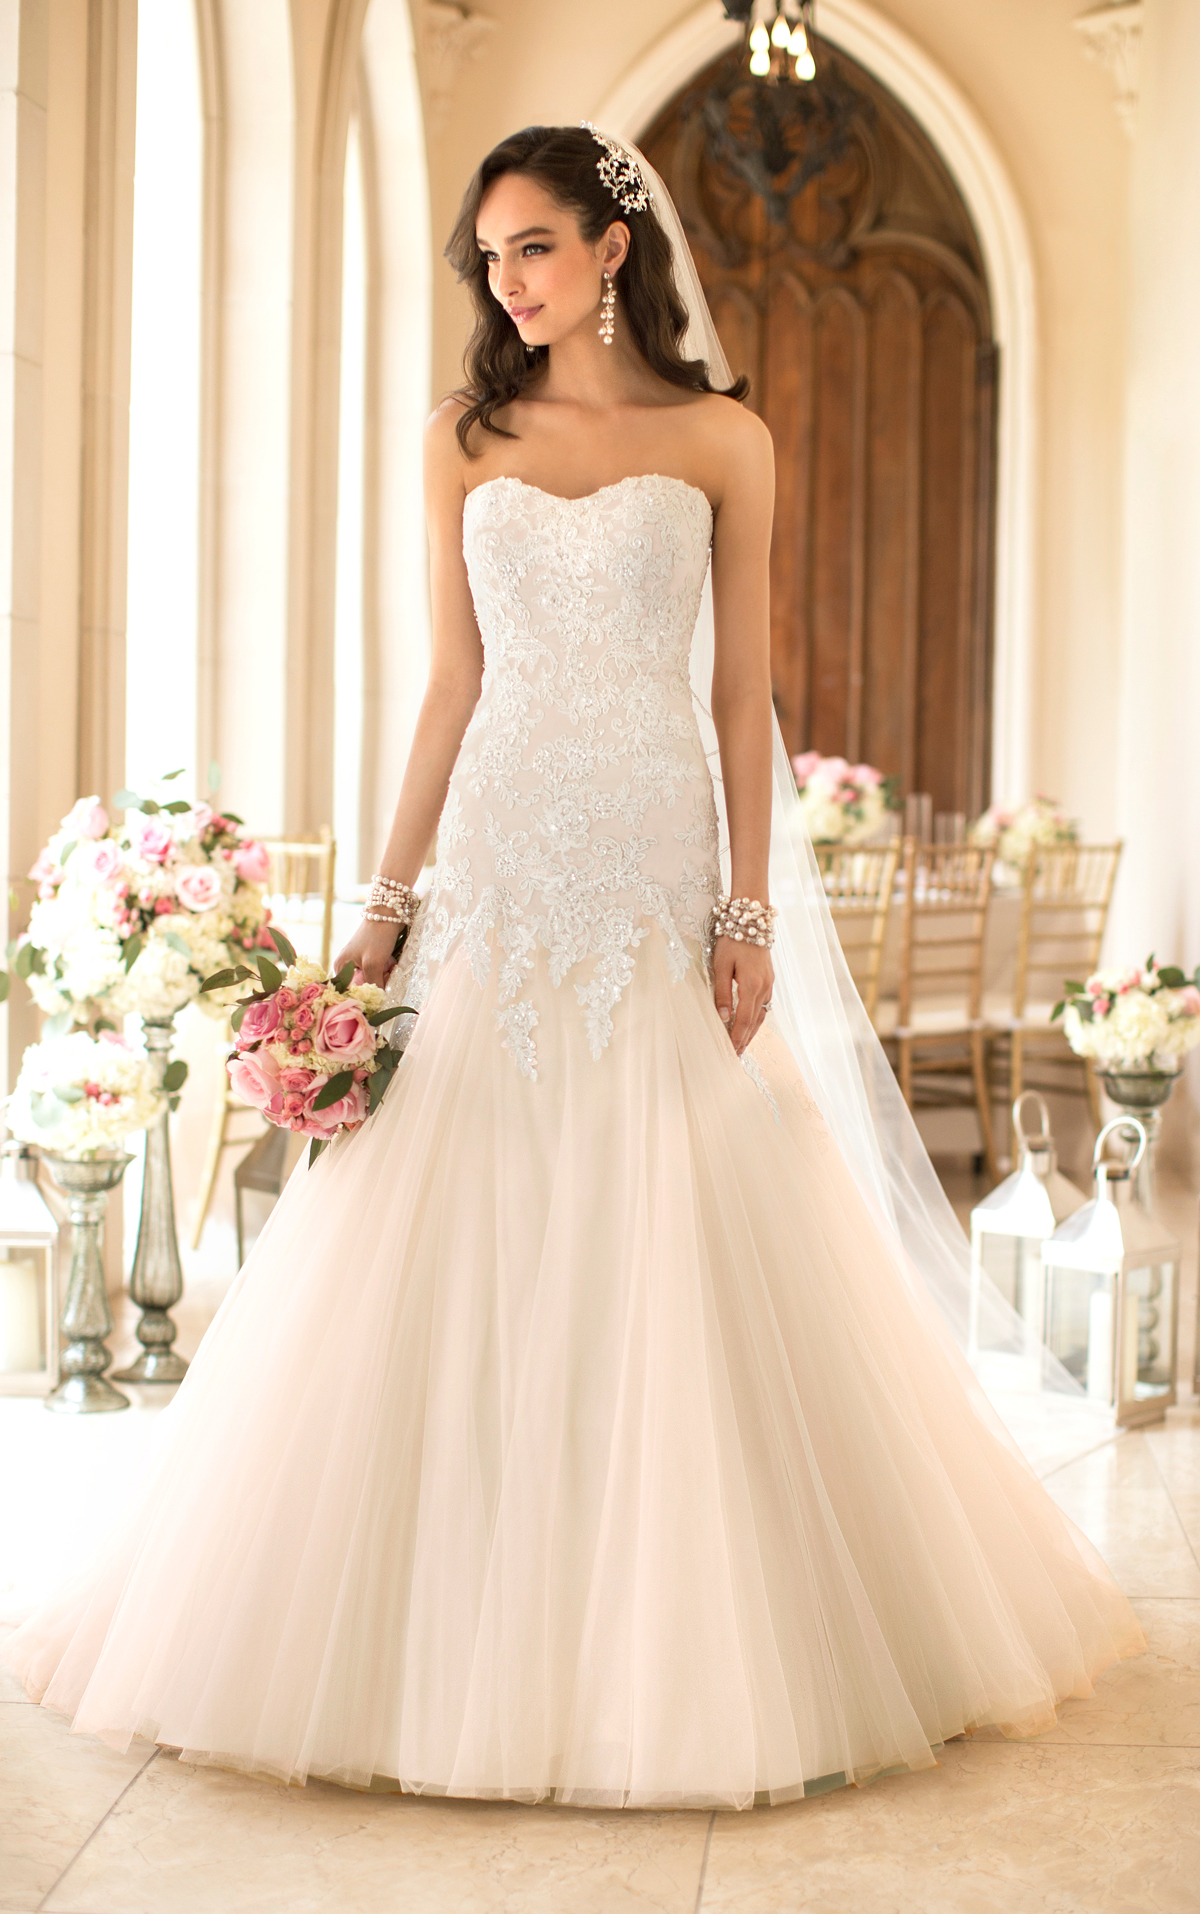 stella-york-wedding-dresses-2014-8-01162014